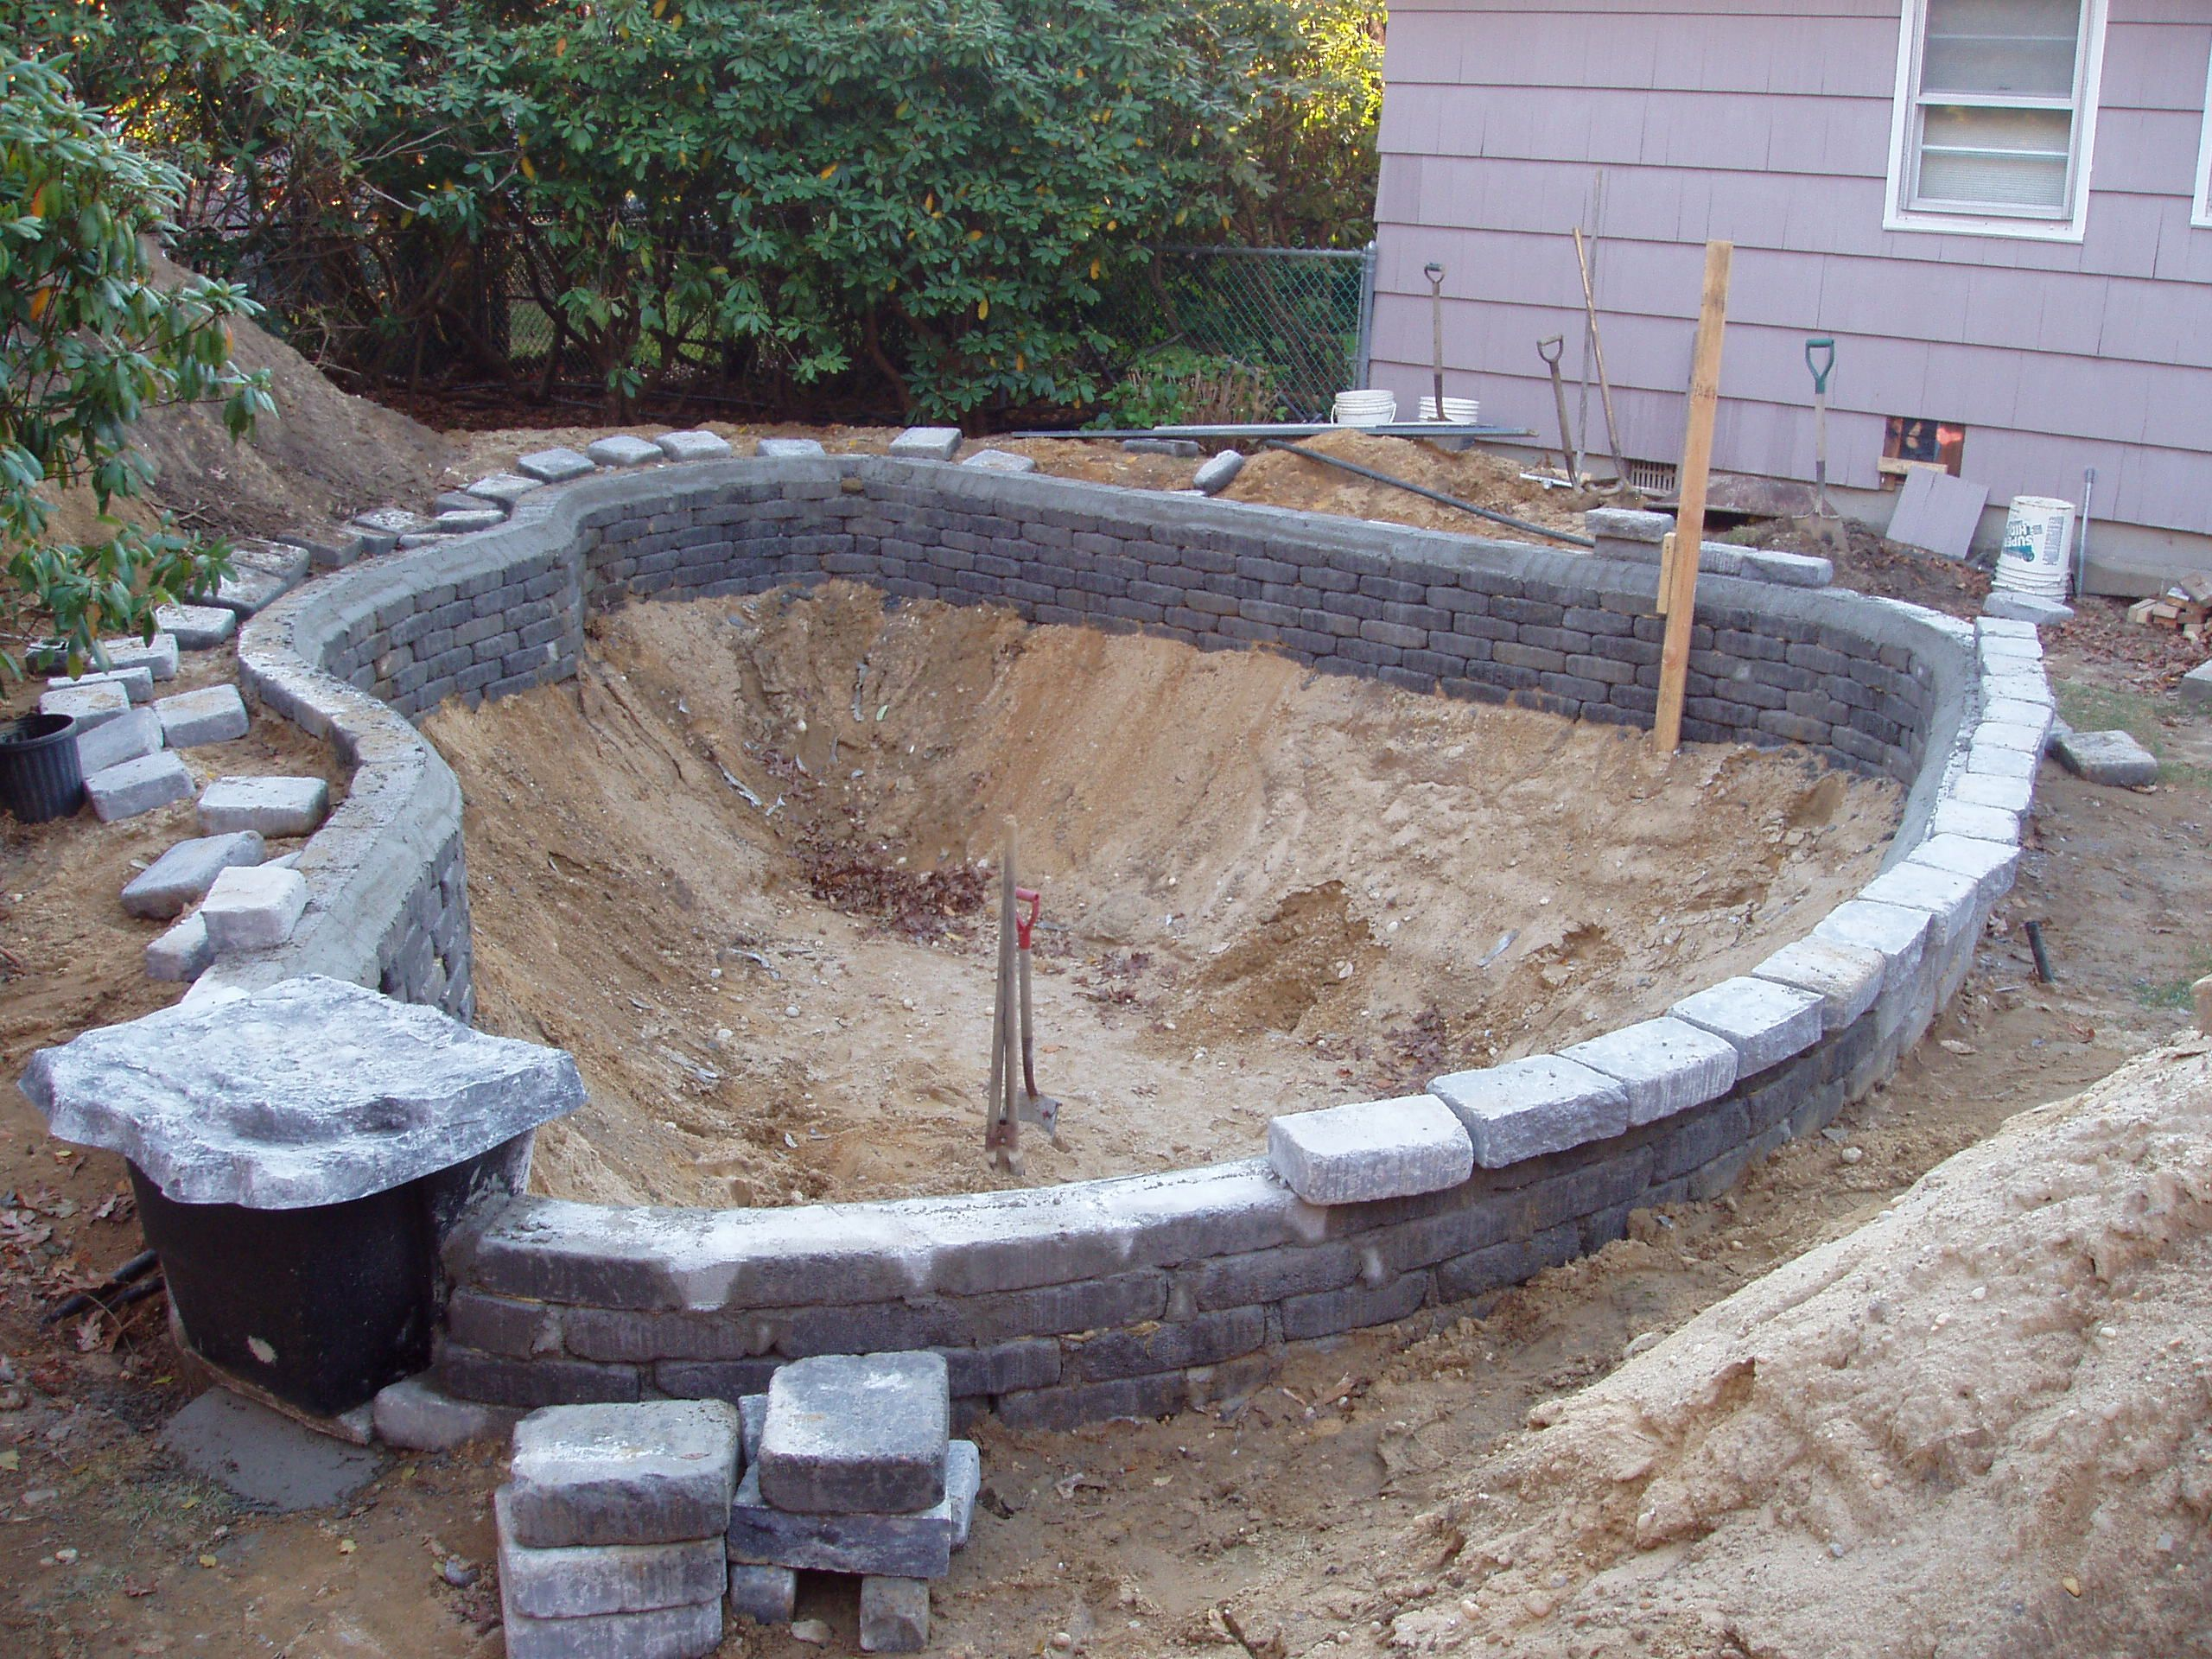 Pond design and construction google search aquaponics for Making a garden pond